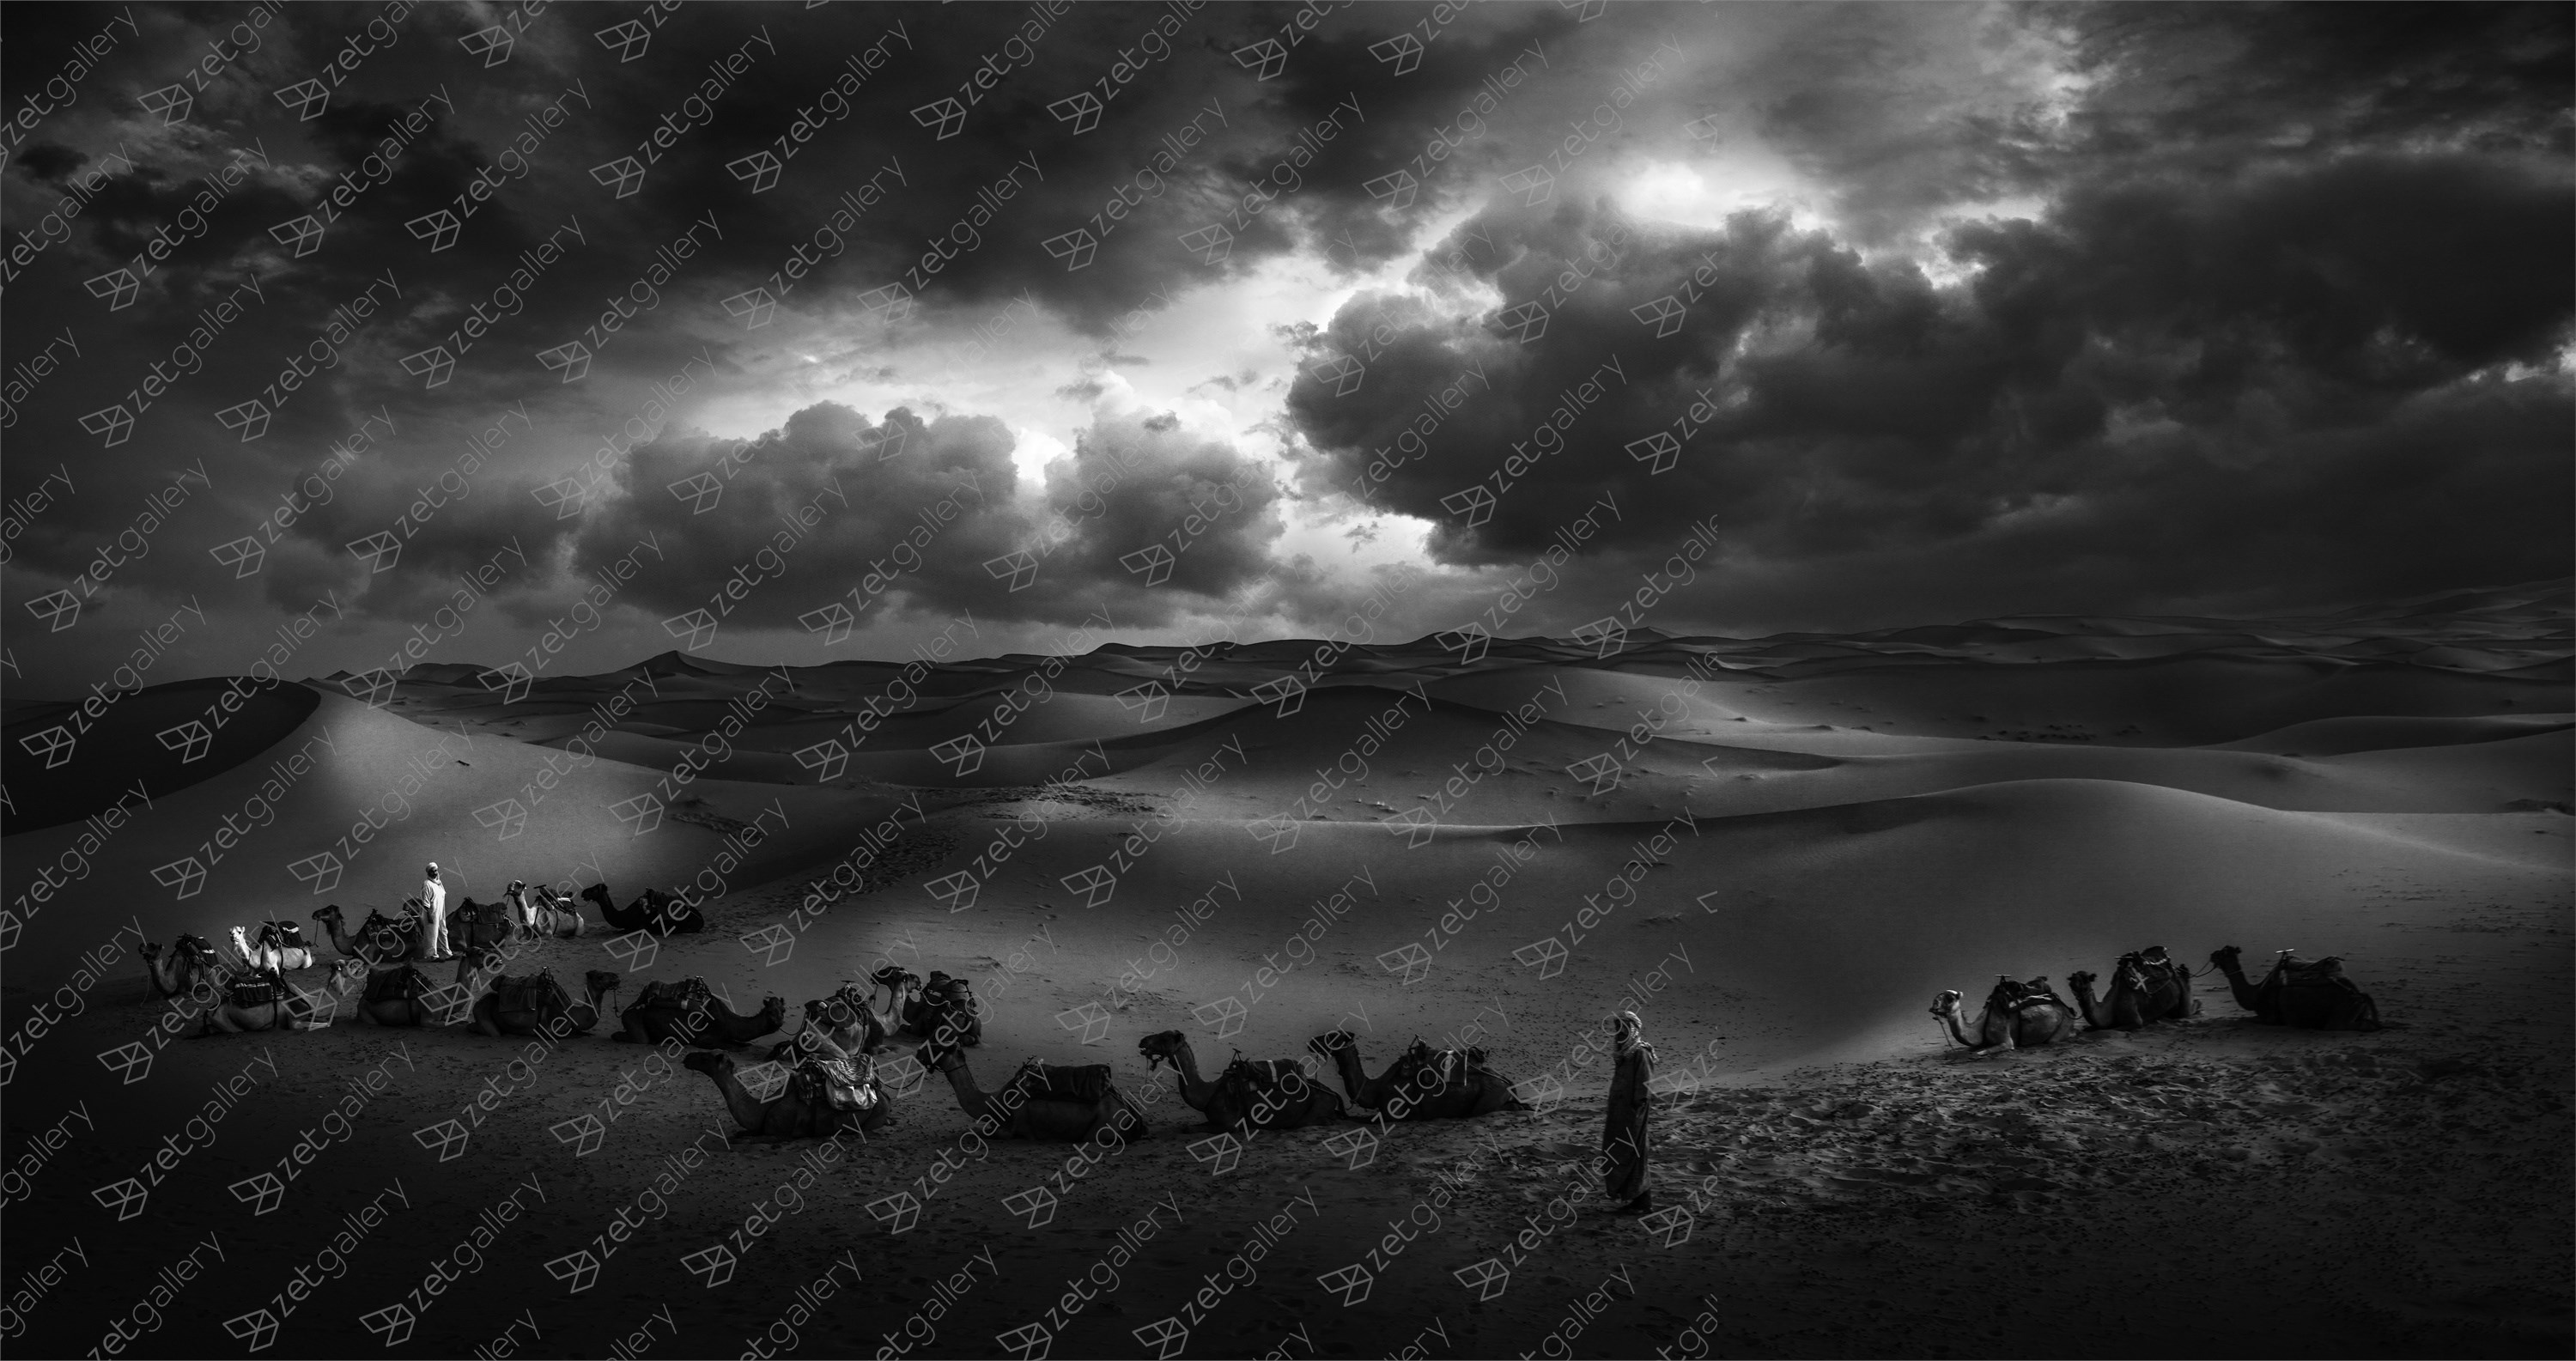 Sunrise in Sahara, original B&W Digital Photography by Ricardo BR